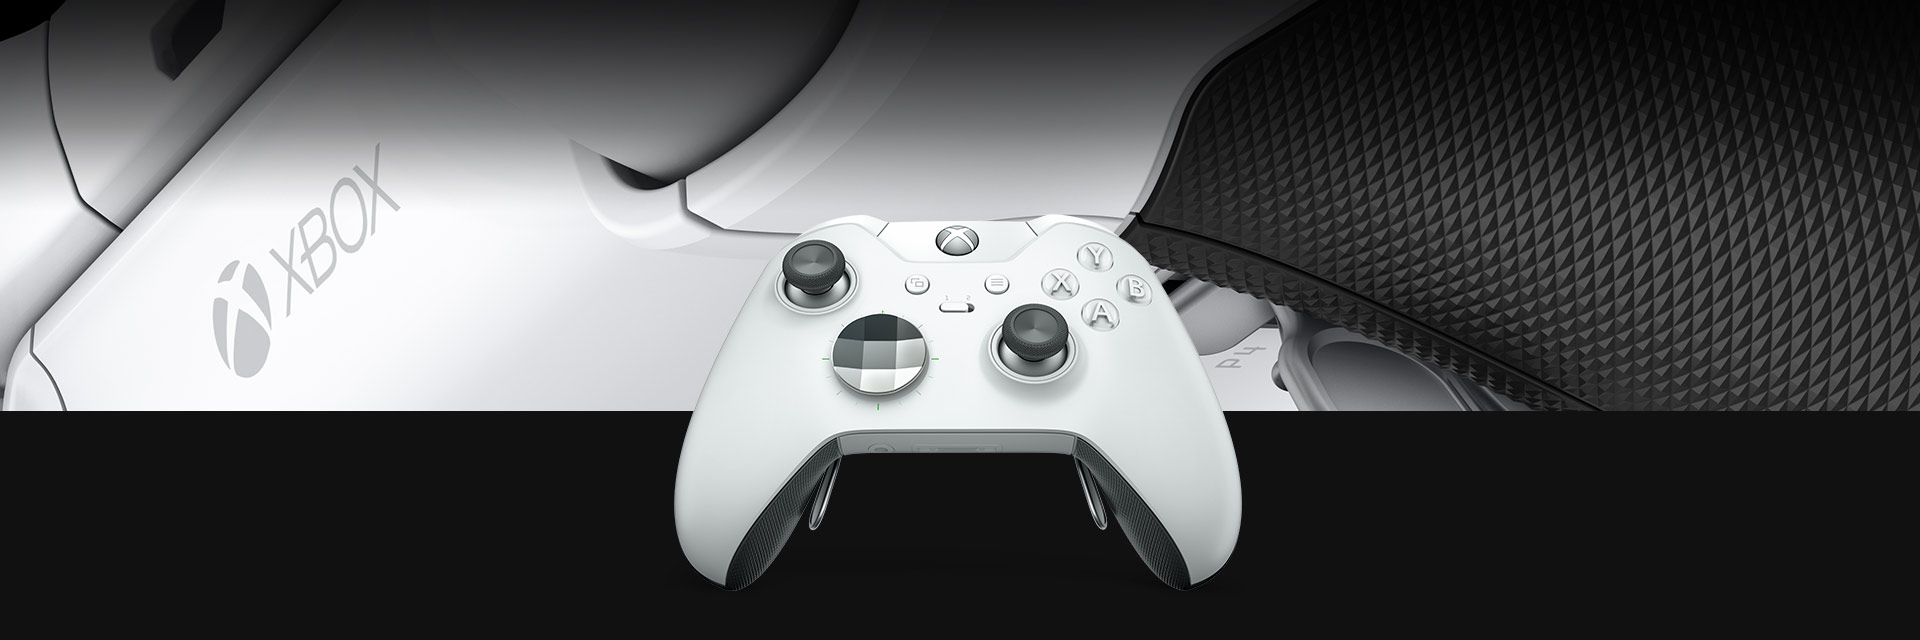 small resolution of front view of the xbox one white elite wireless controller